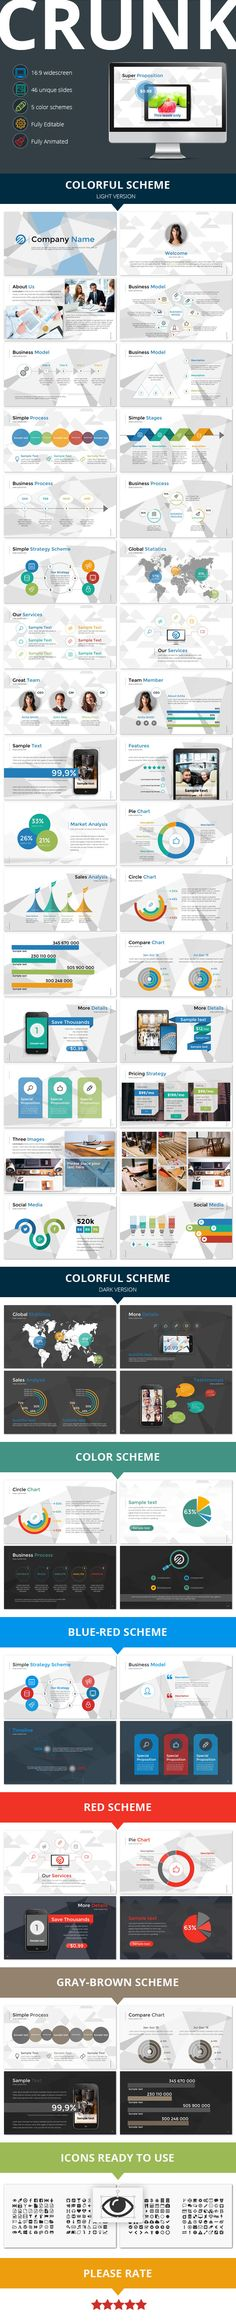 folio powerpoint presentation template | powerpoint presentation, Presentation templates